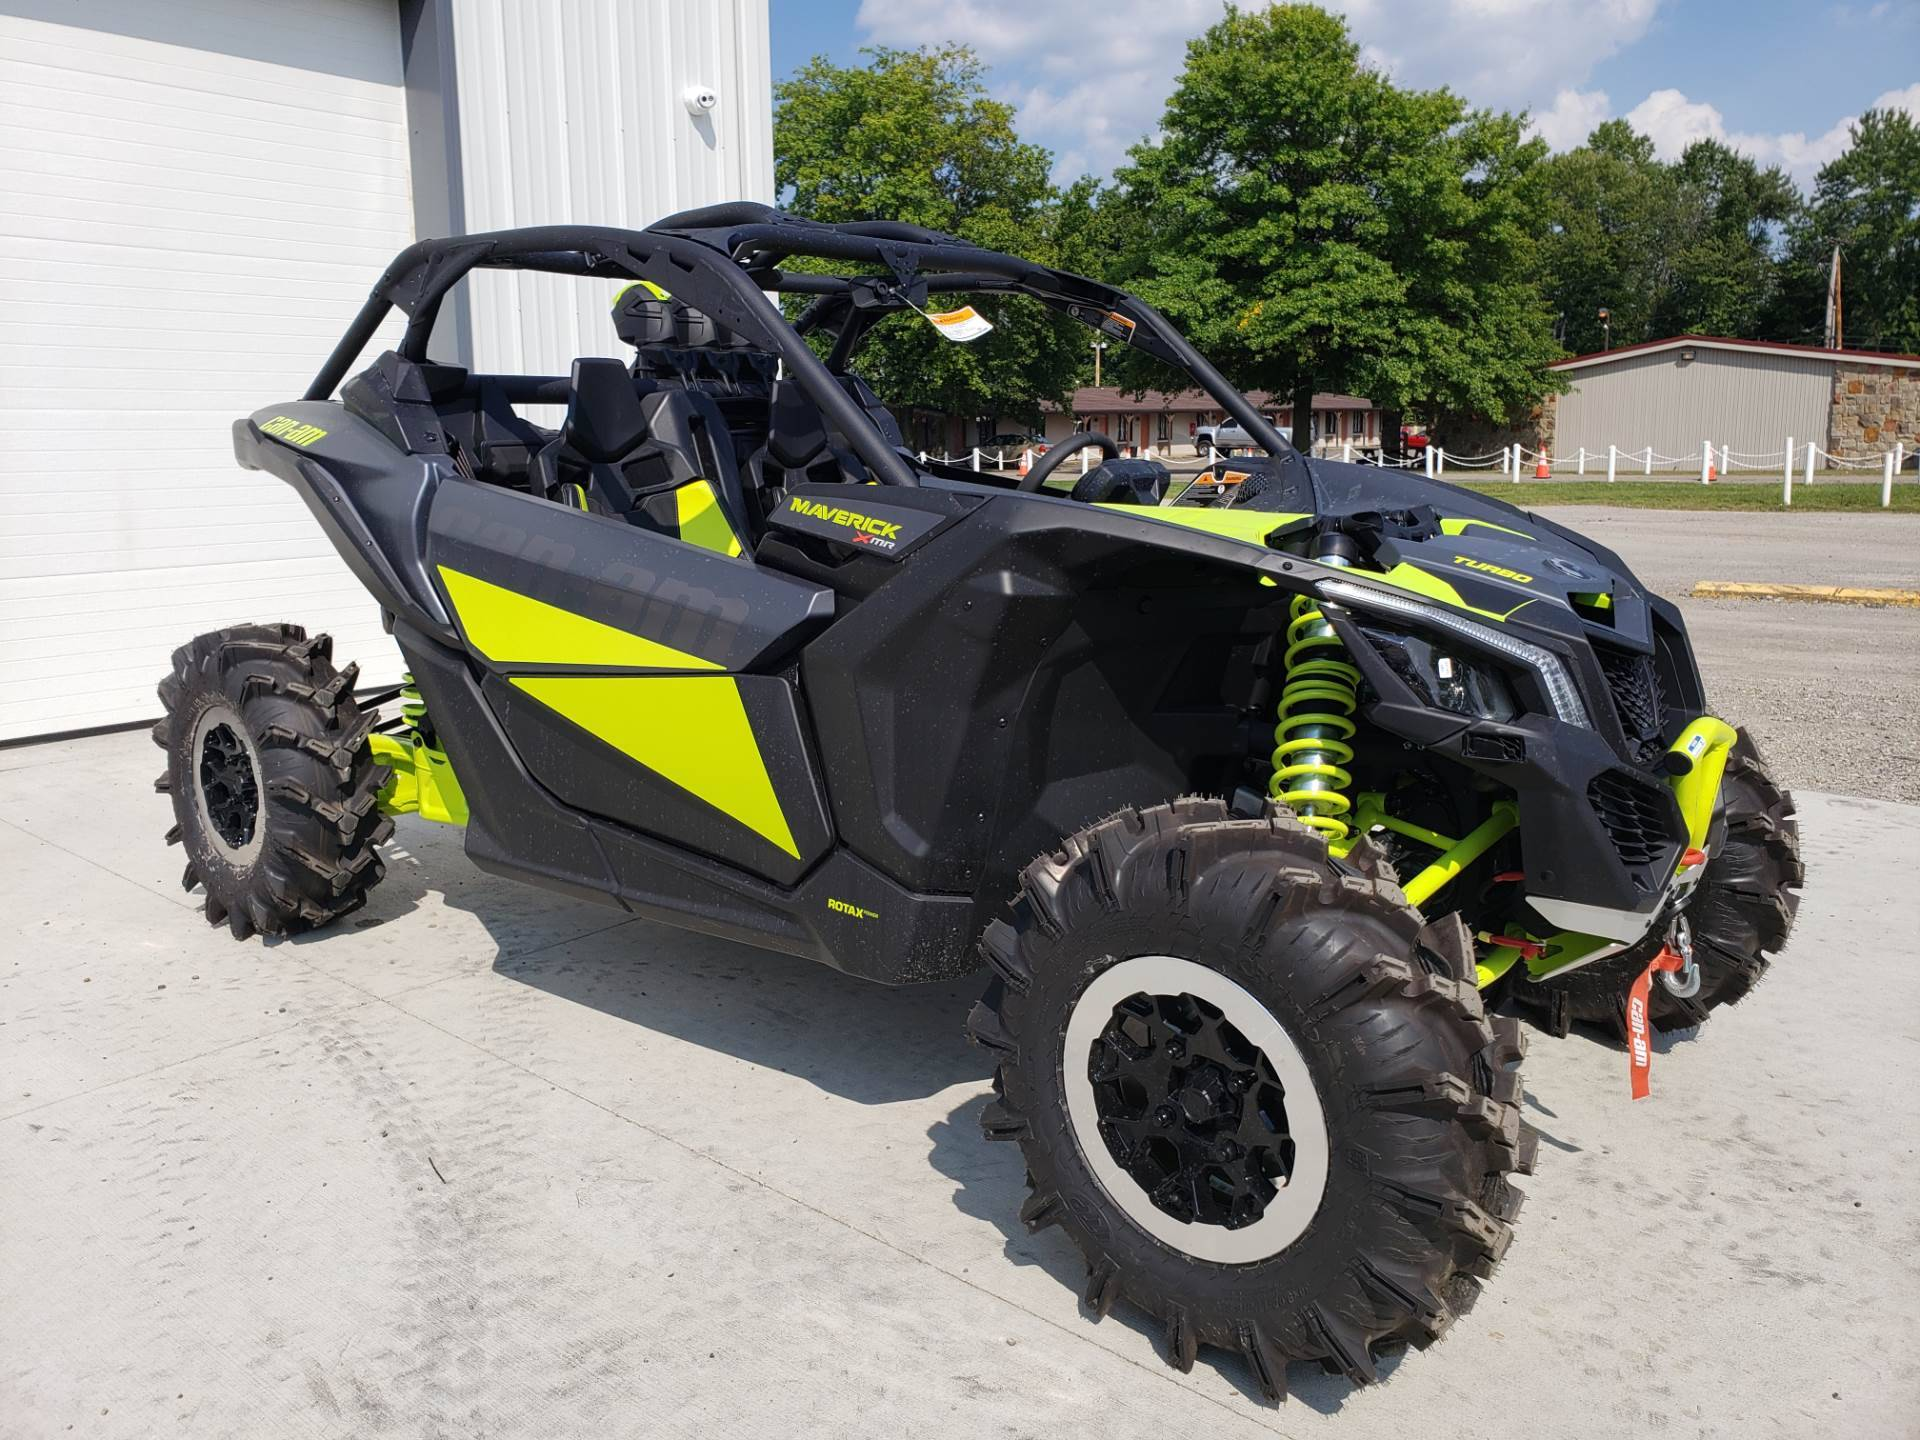 2020 Can-Am Maverick X3 X MR Turbo in Cambridge, Ohio - Photo 4